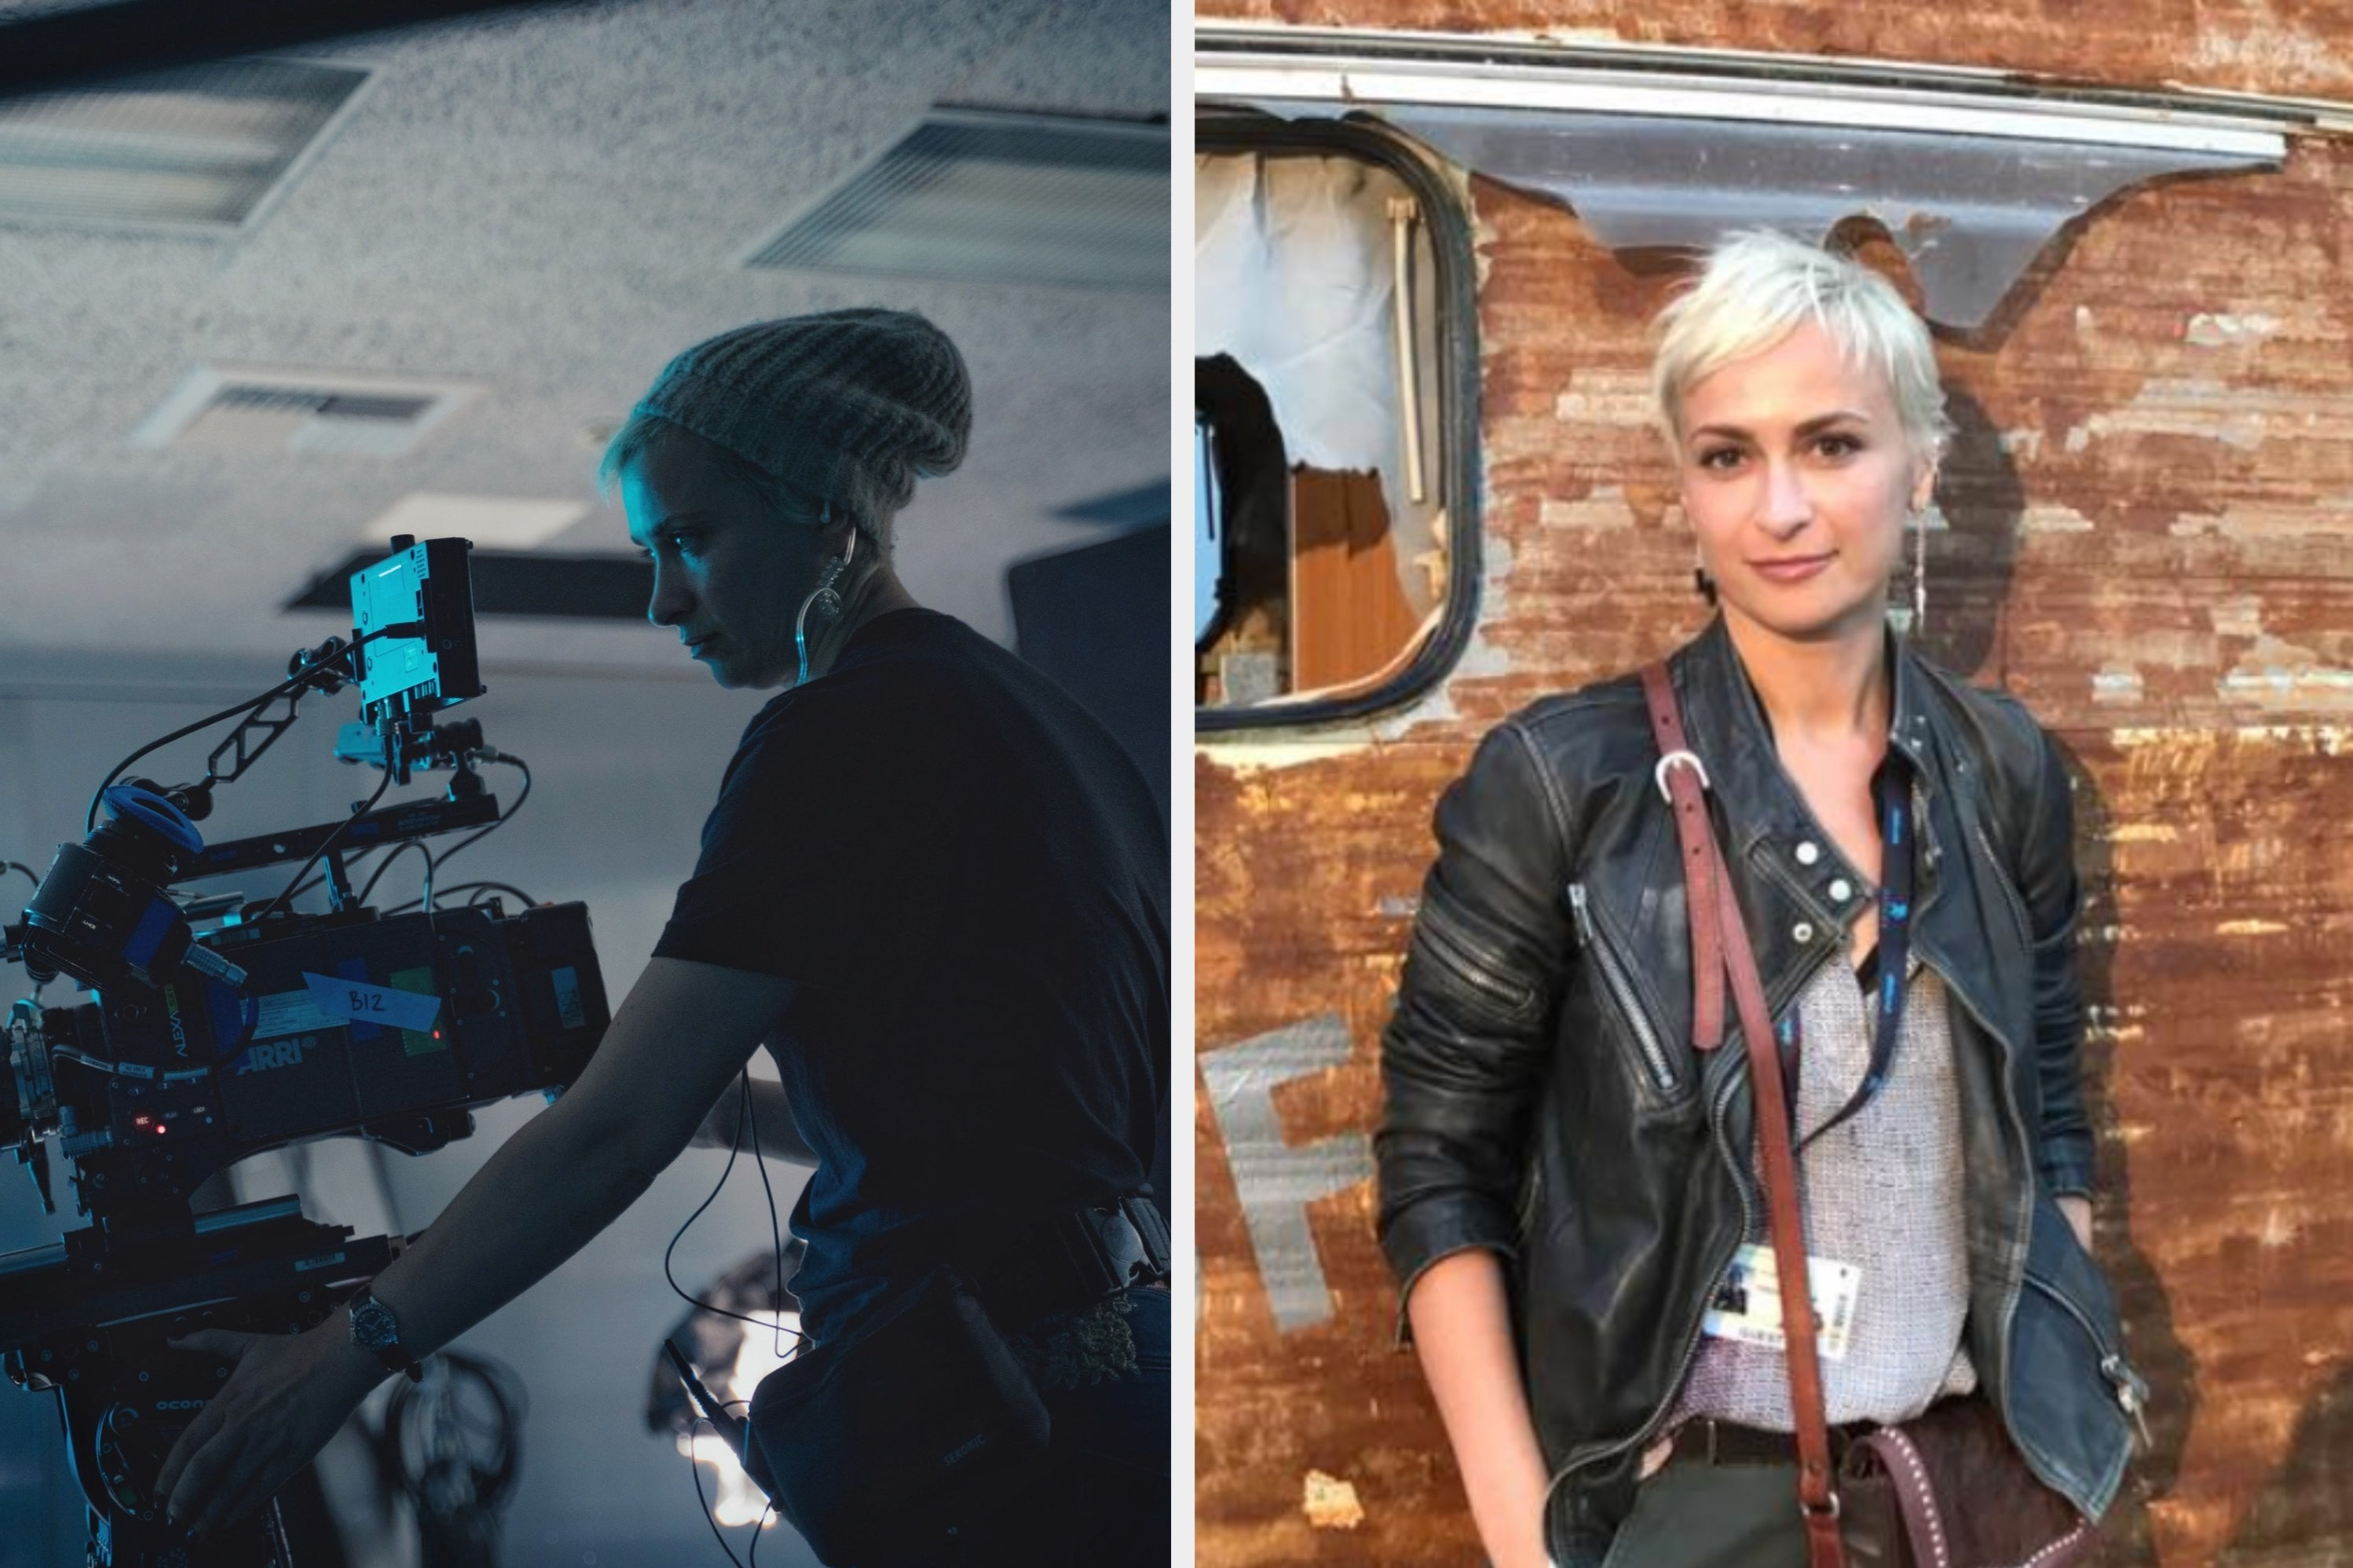 """Halyna Hutchins, A Cinematographer Killed On Set, Was A """"Completely Committed Artist"""""""